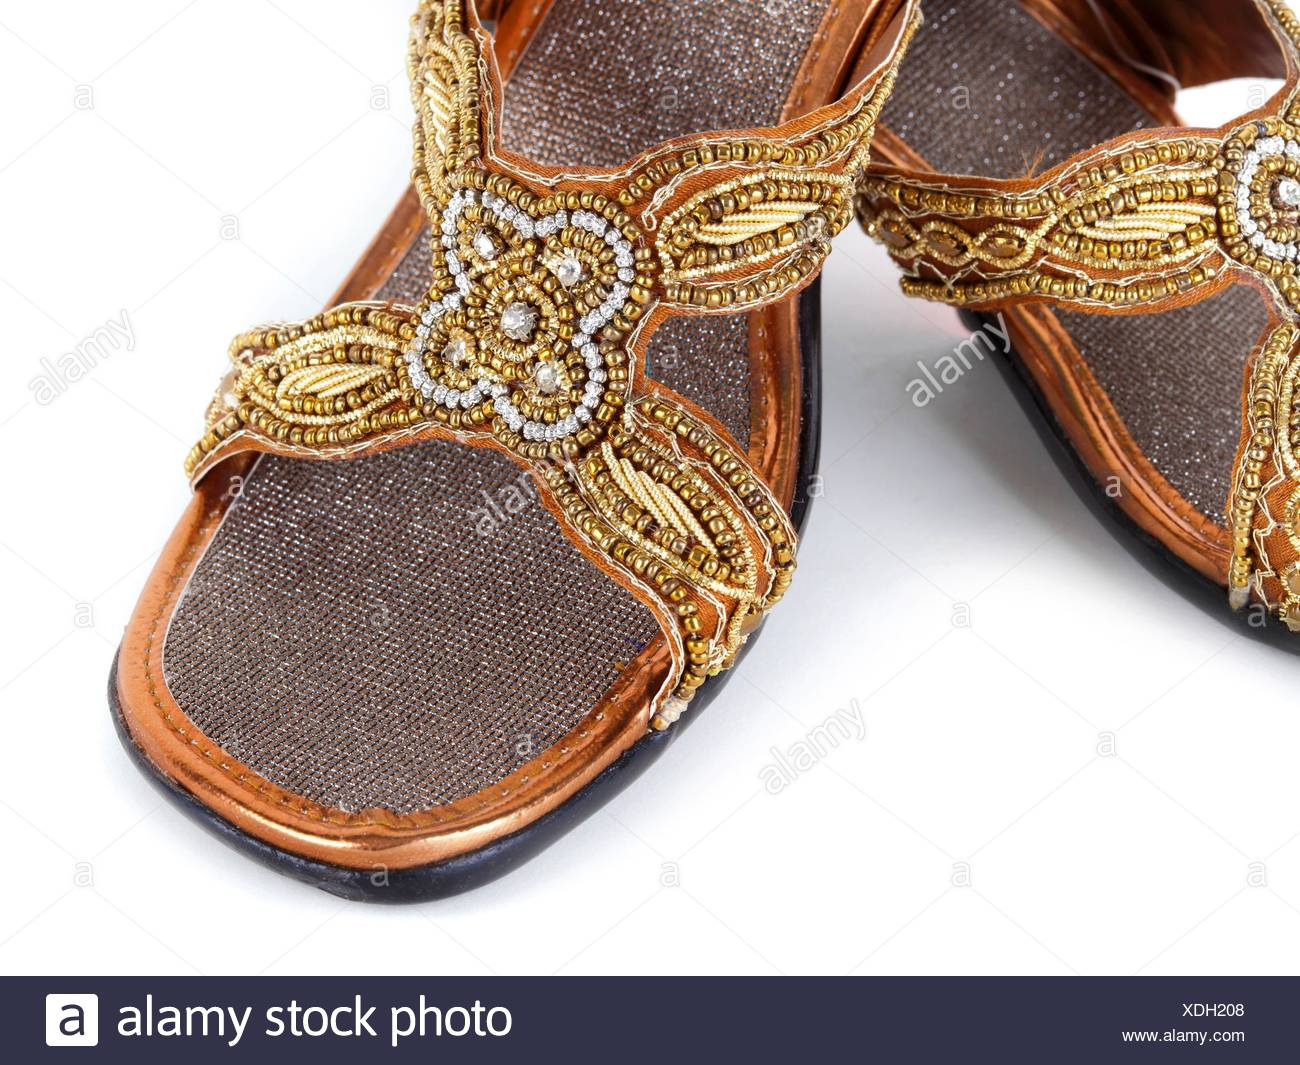 8aff5215cb4c3 Pair of traditional Indian sandals on white background. - Stock Image